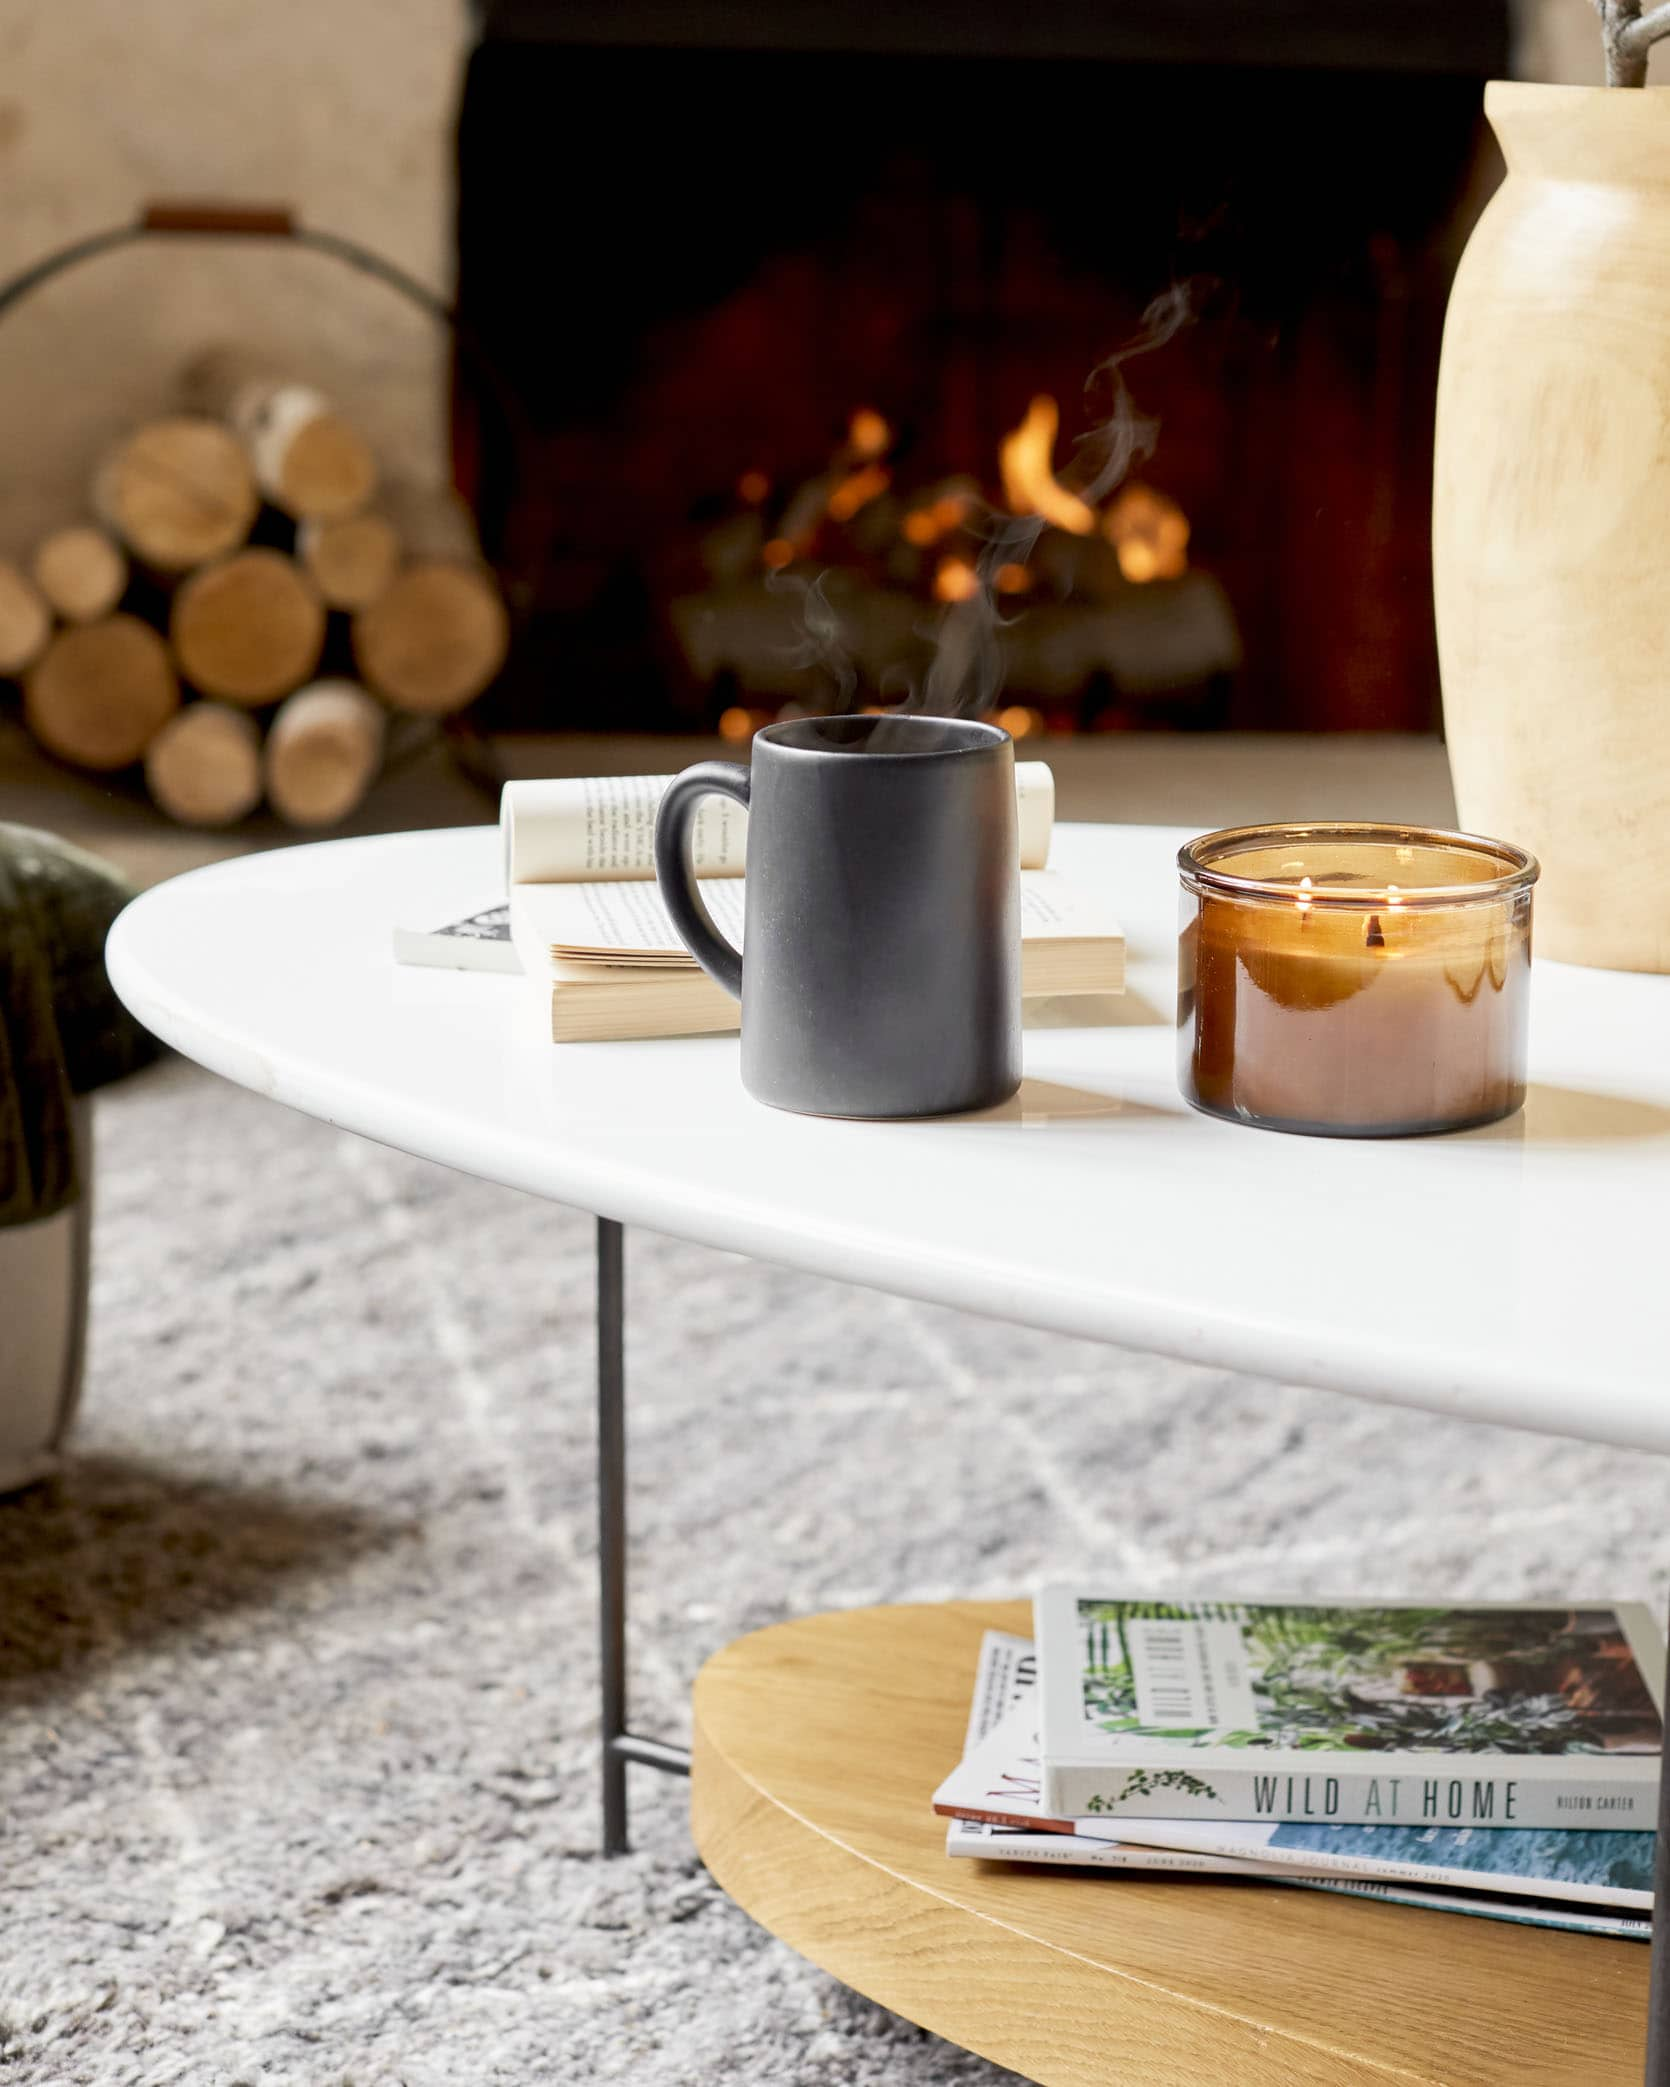 See How EHD Brings Fall Into Our Homes (And Yes, There Are *Chic* Pumpkins Involved ... Target Does It Again) Best Children's Lighting & Home Decor Online Store